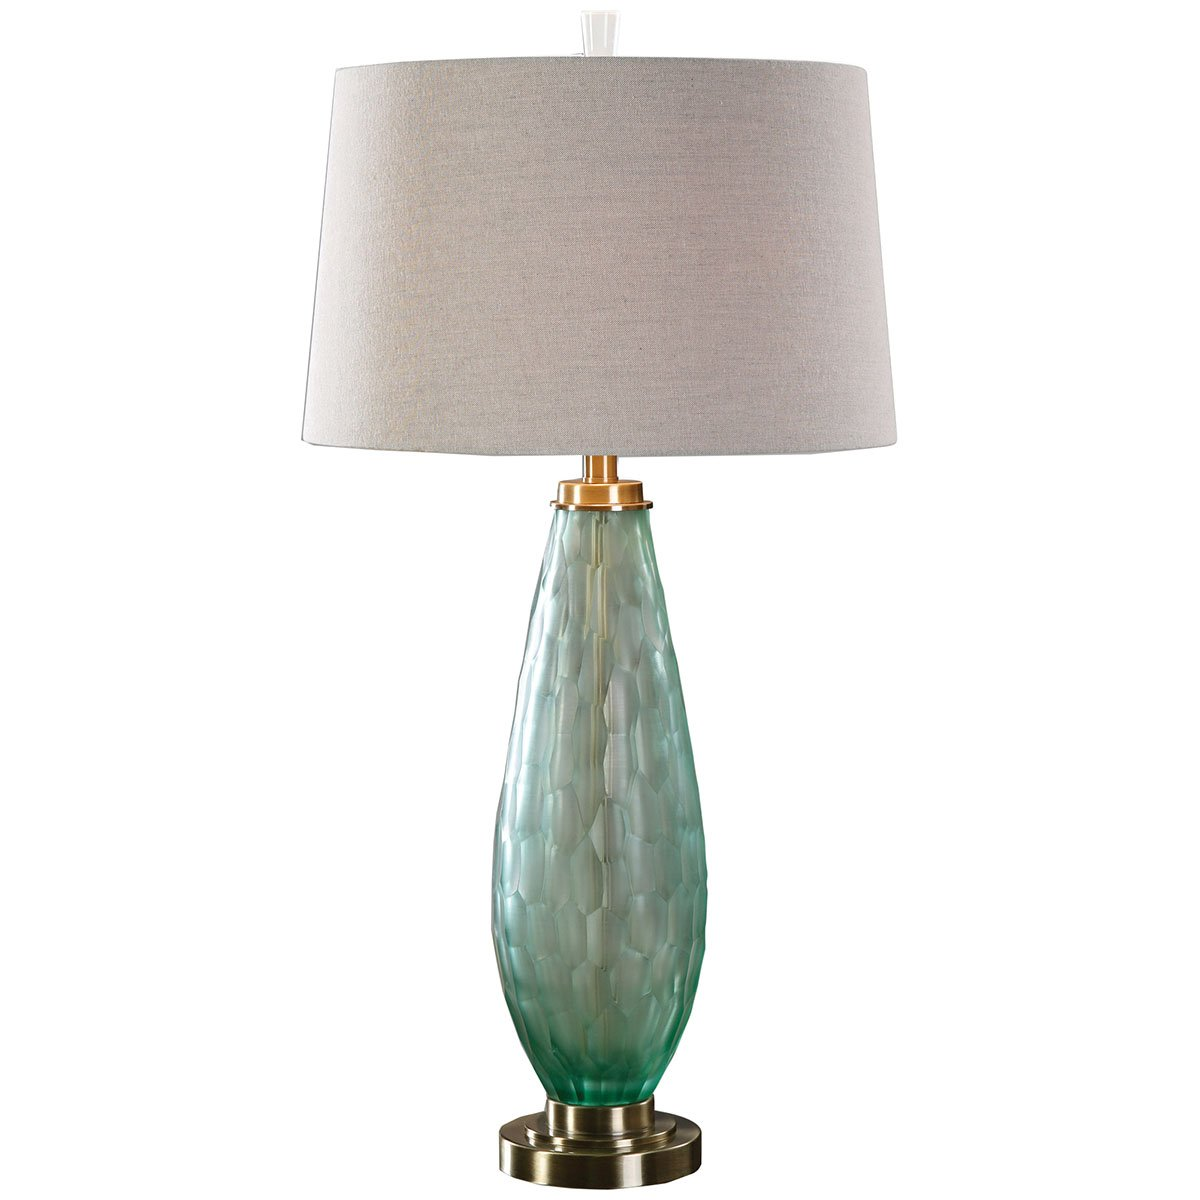 Amazon.com: Uttermost 27003 Lenado Glass Table Lamp, Sea Green: Home U0026  Kitchen